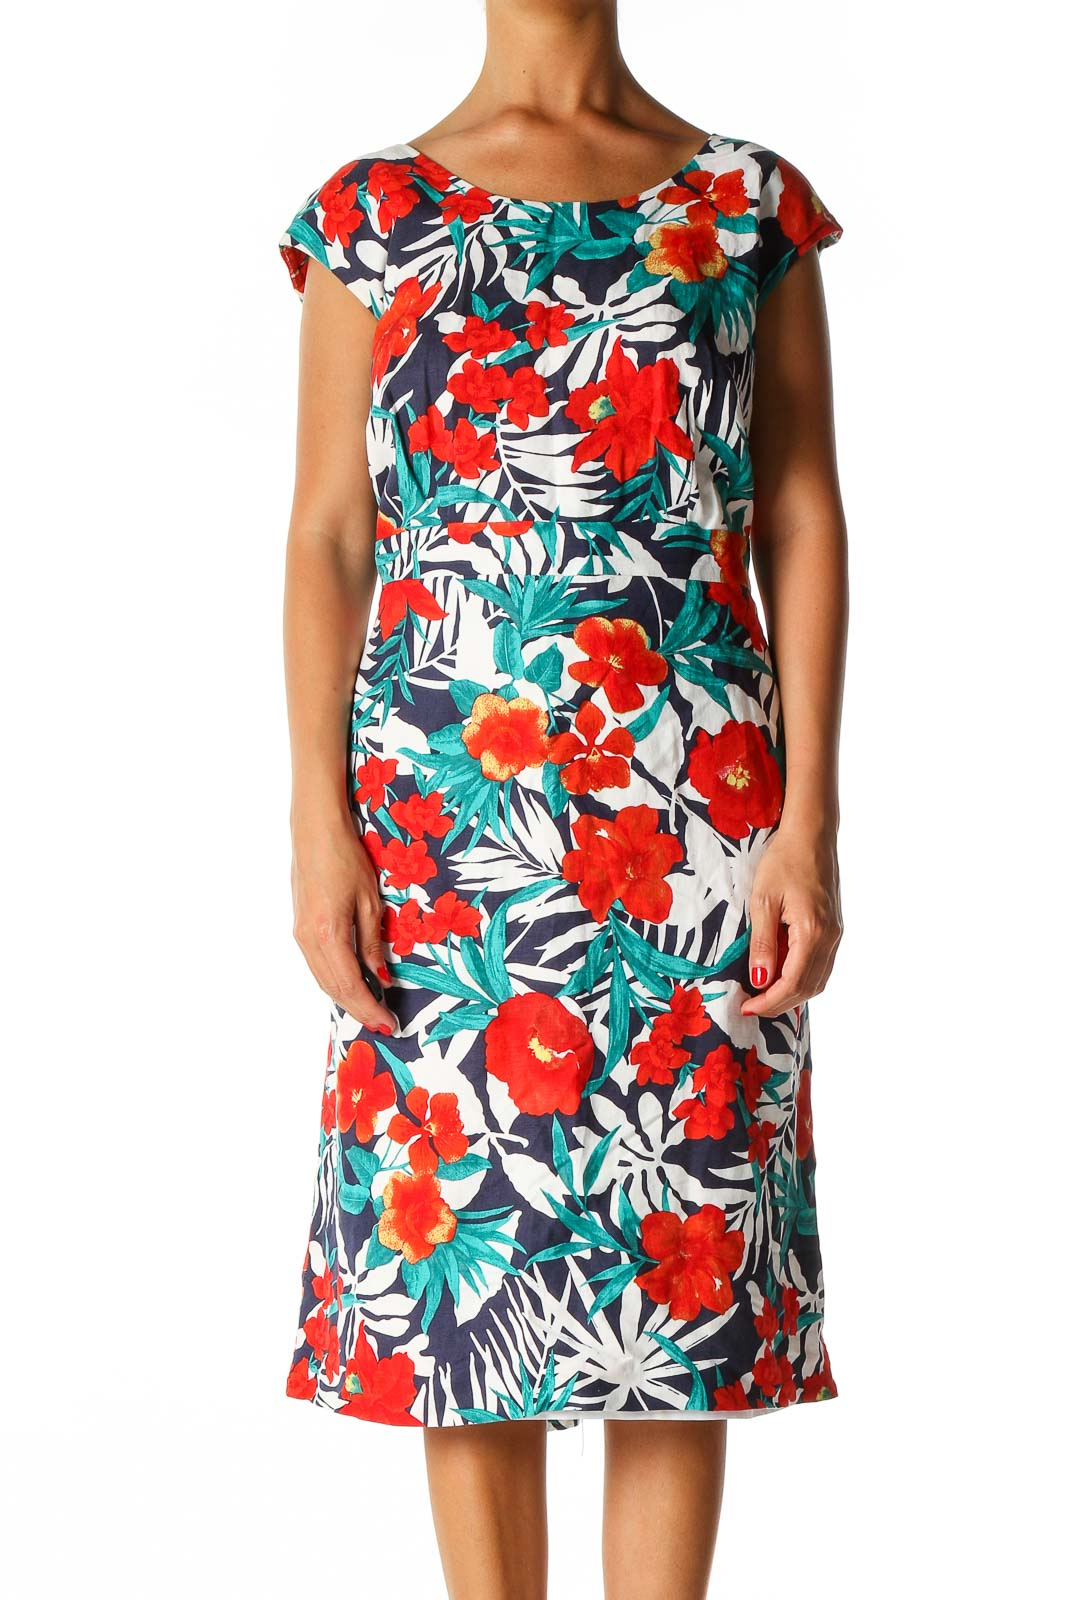 Red Floral Print Holiday A-Line Dress Front